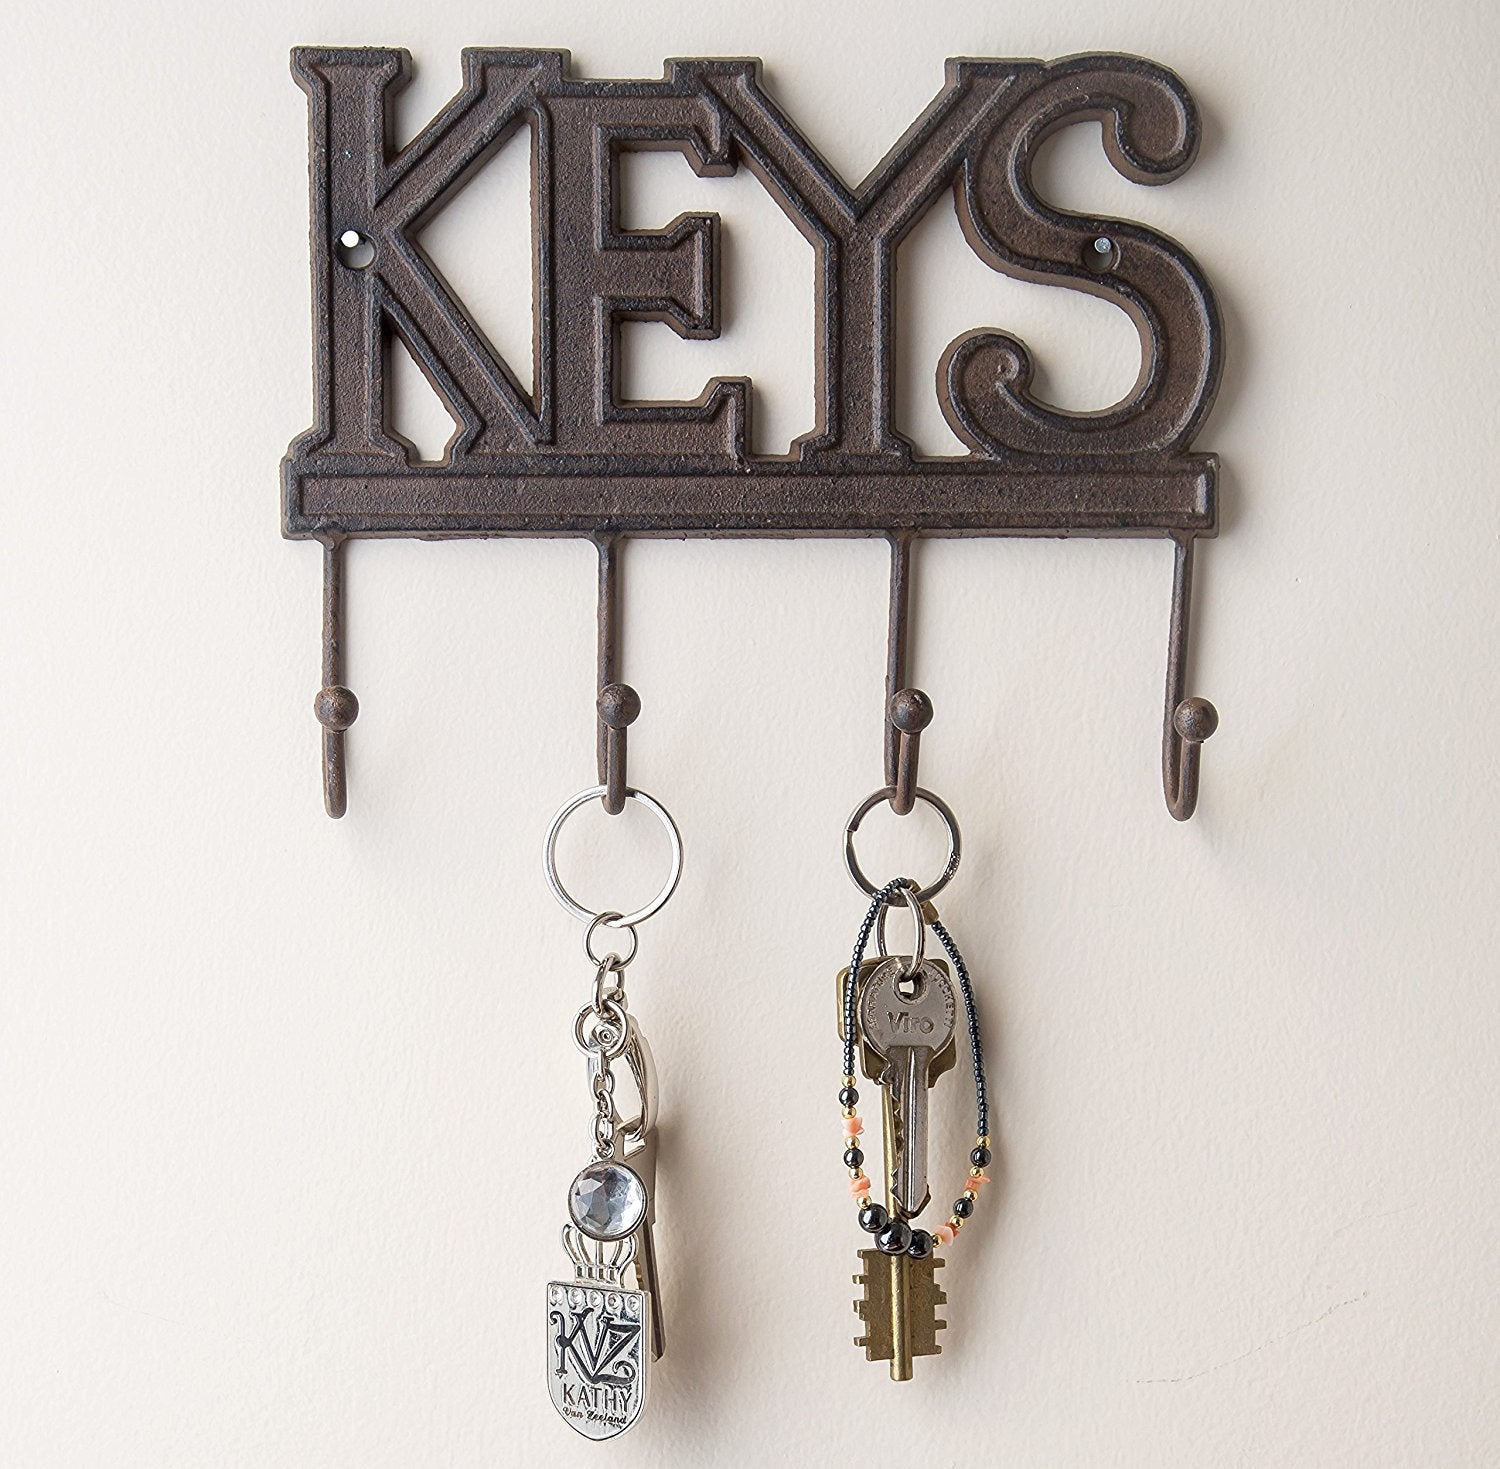 decorative cast iron wall mounted key holder